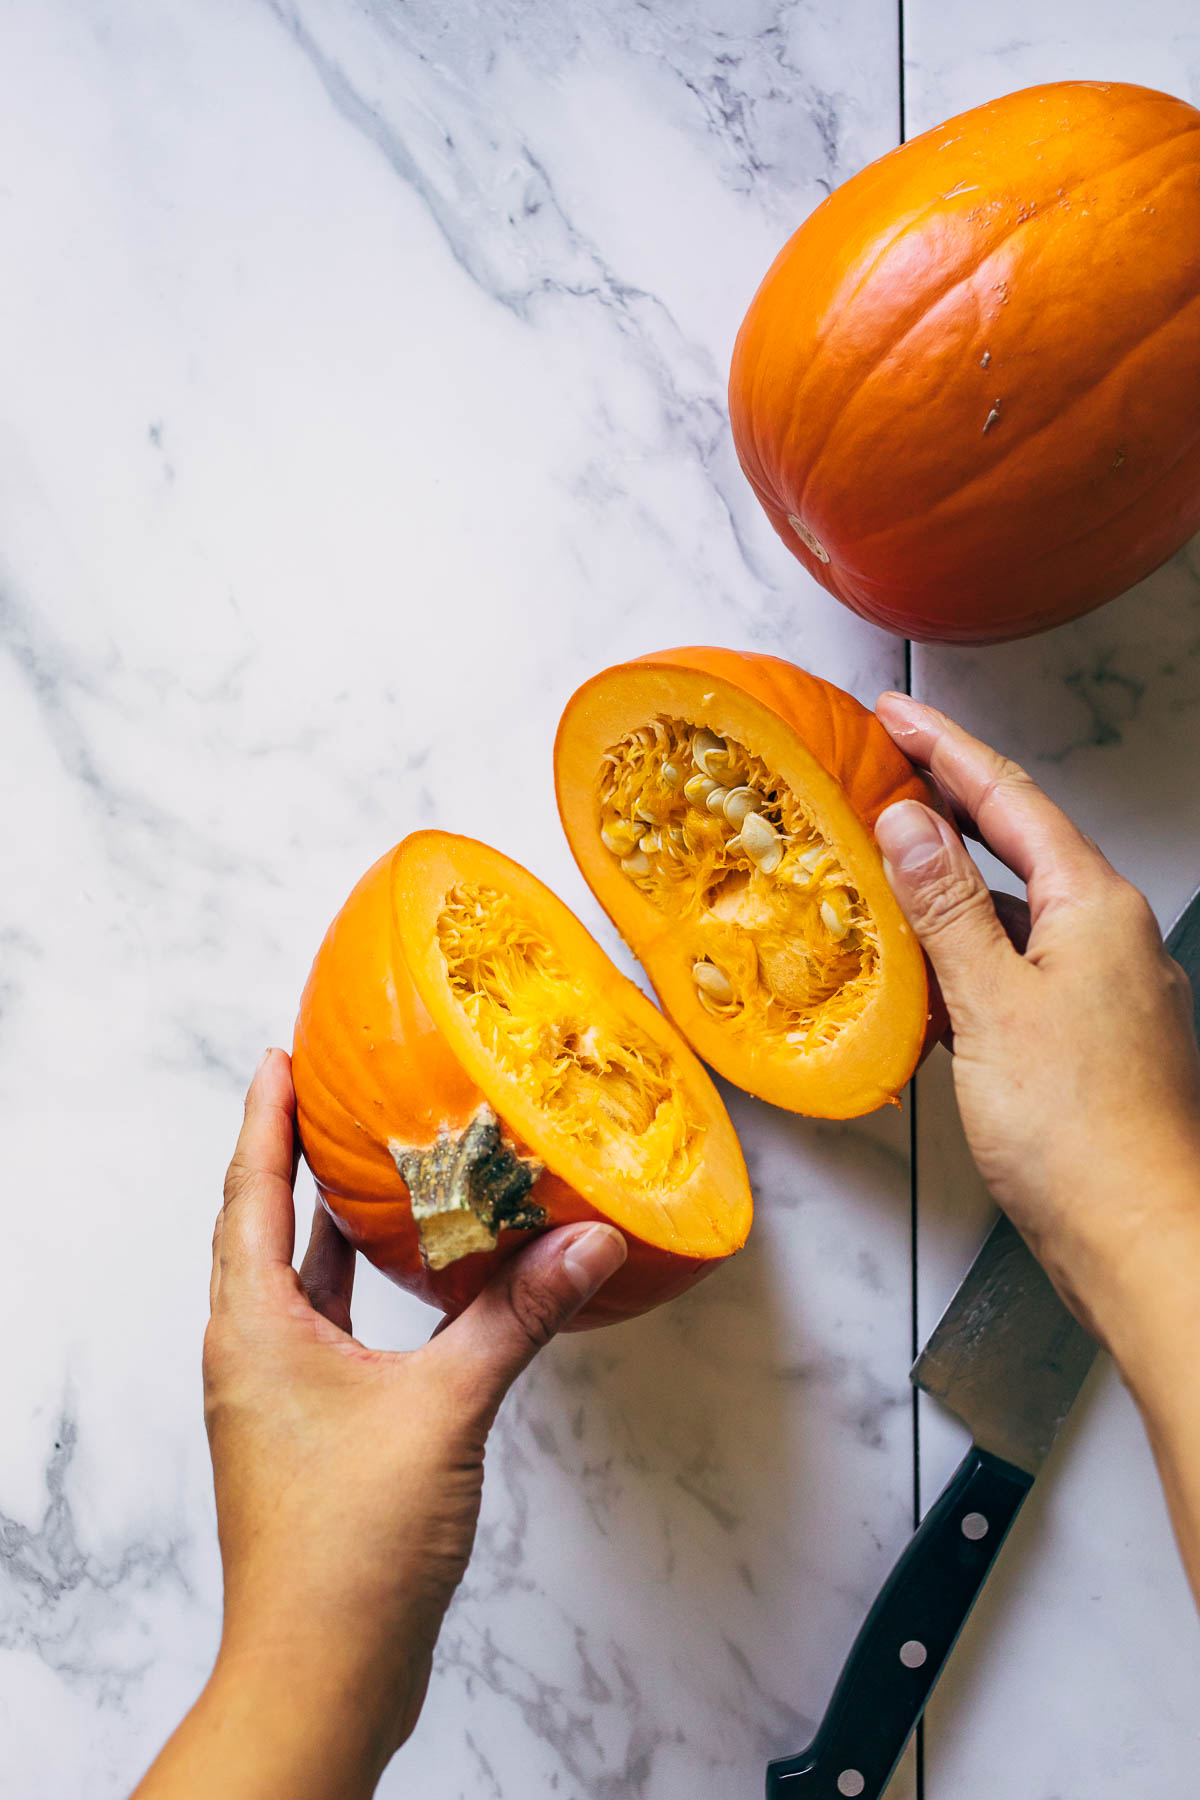 Hands opening a halved pumpkin on a marble board with a chef's knife on the board.